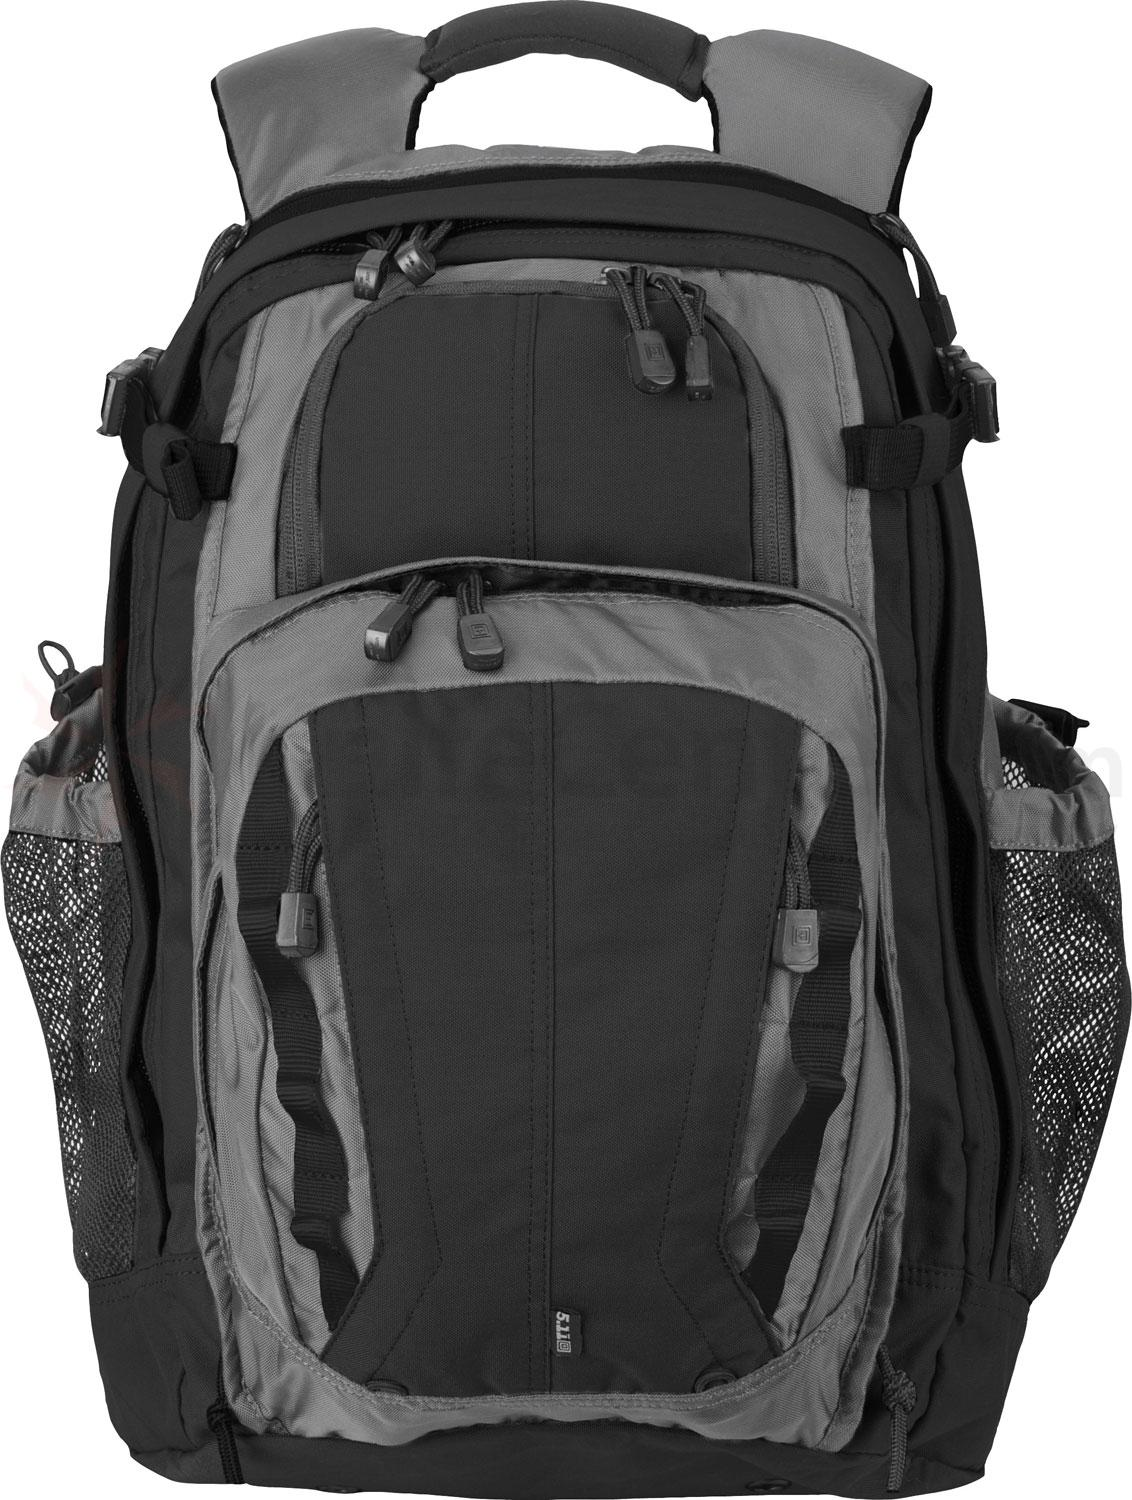 5.11 Tactical Covrt 18 Backpack, Asphalt/Black (56961-021)